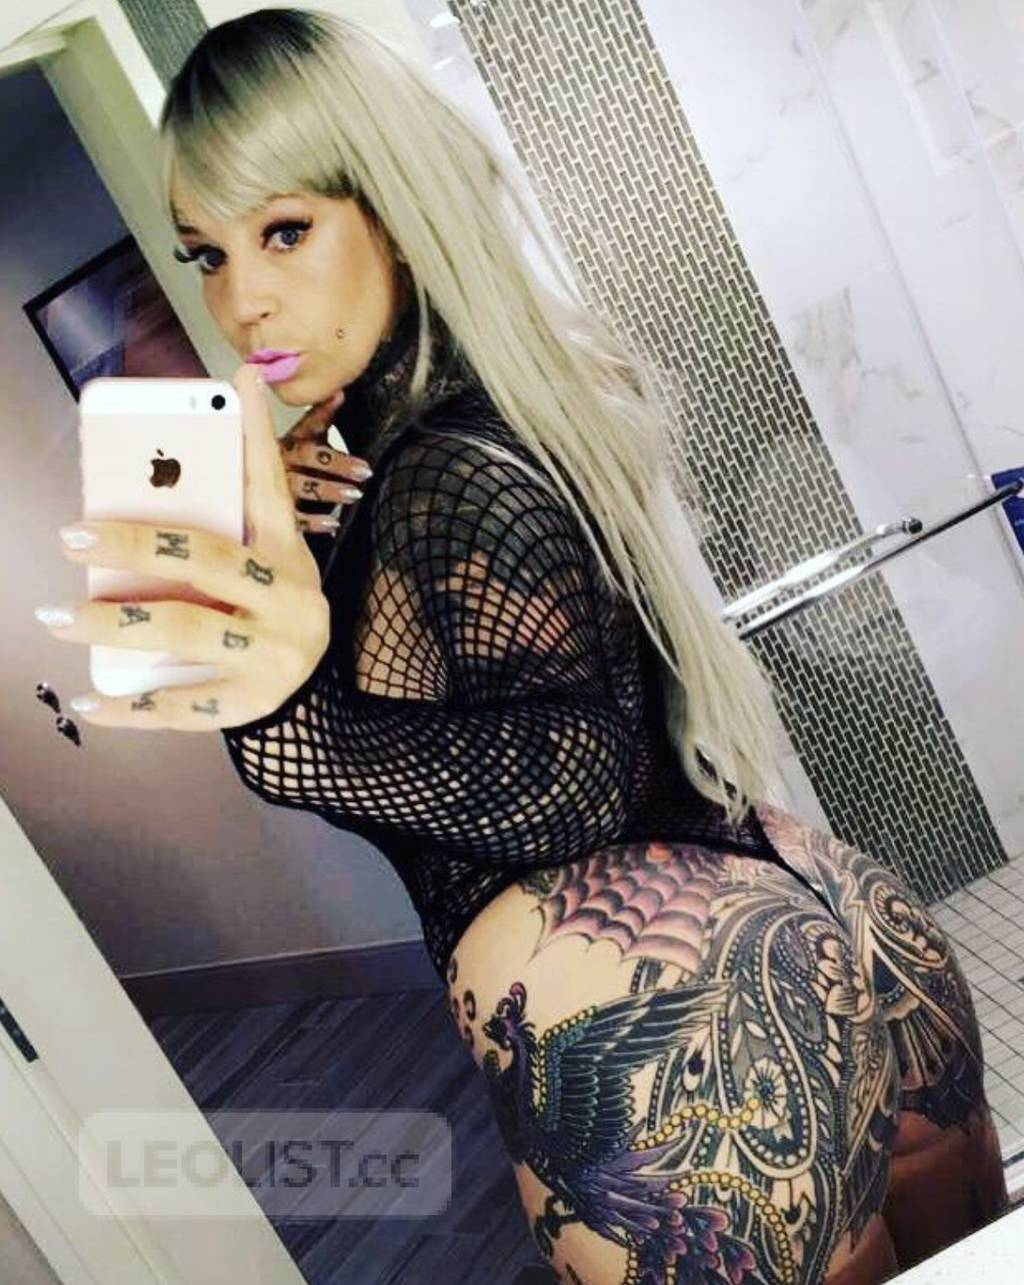 YYZ COME Bath yourself in thick curvy tattooed luxury